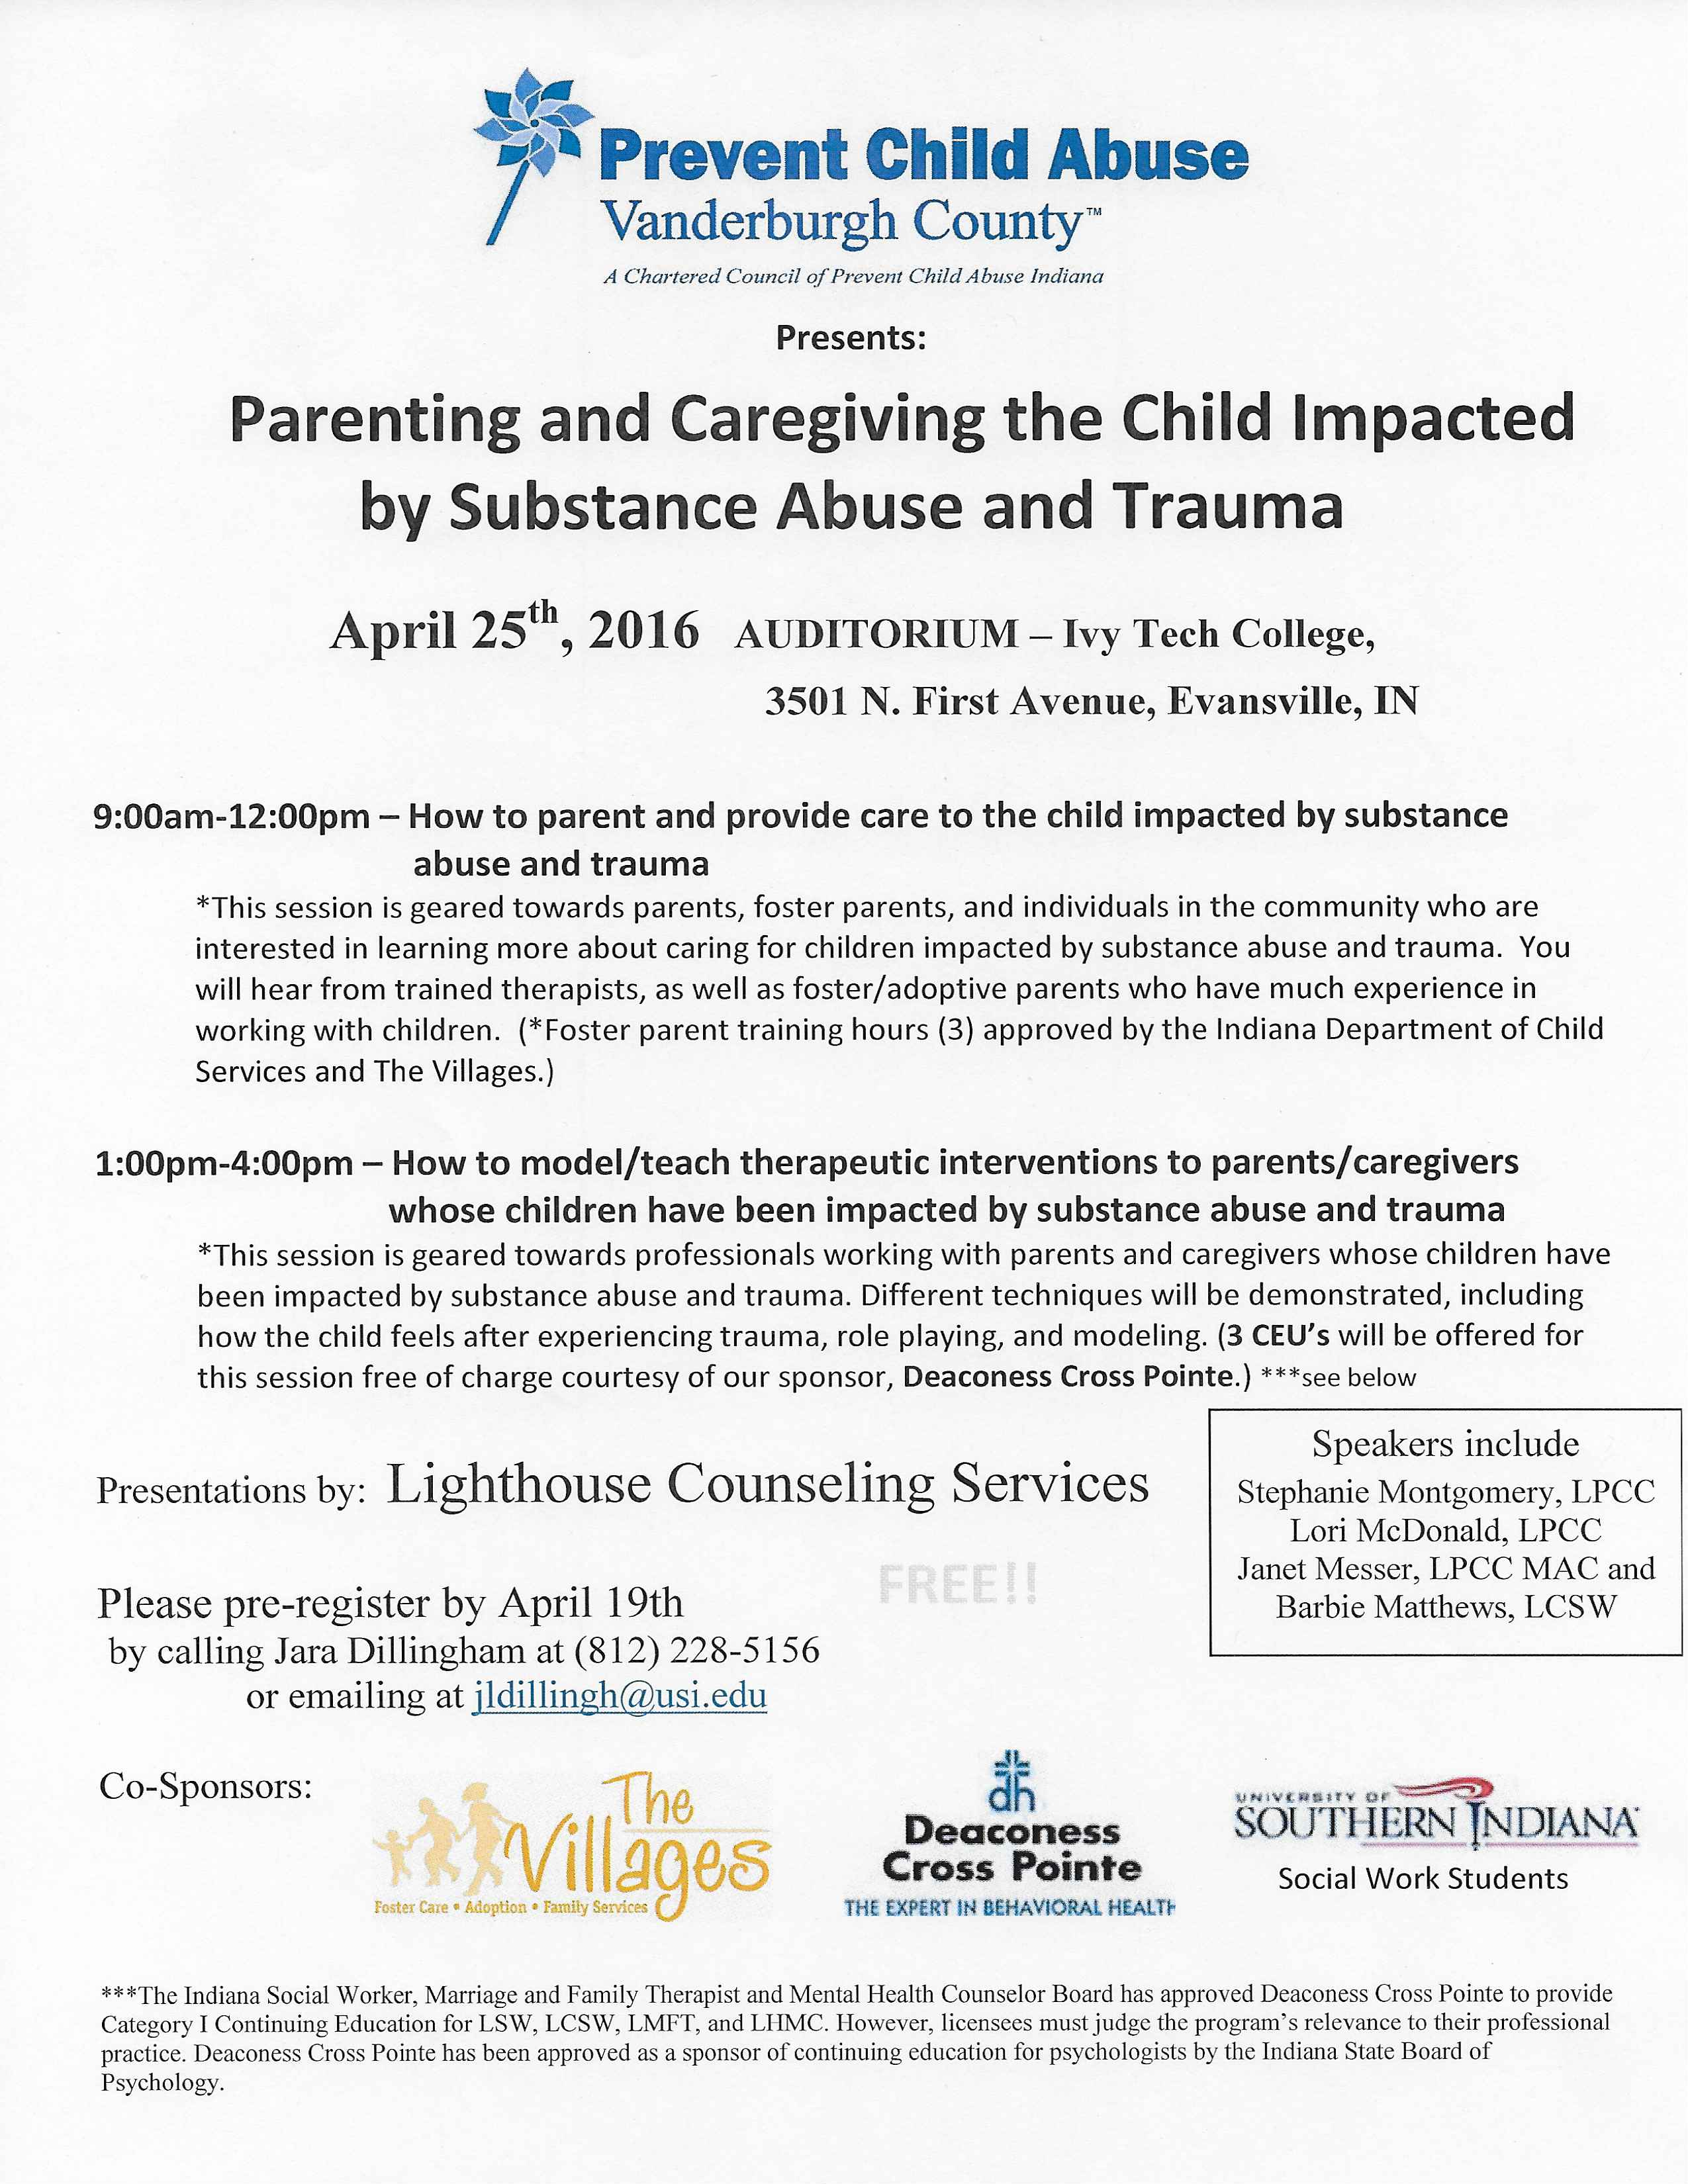 Preventing and Caregiving the Child Impacted by Substance Abuse and Trauma